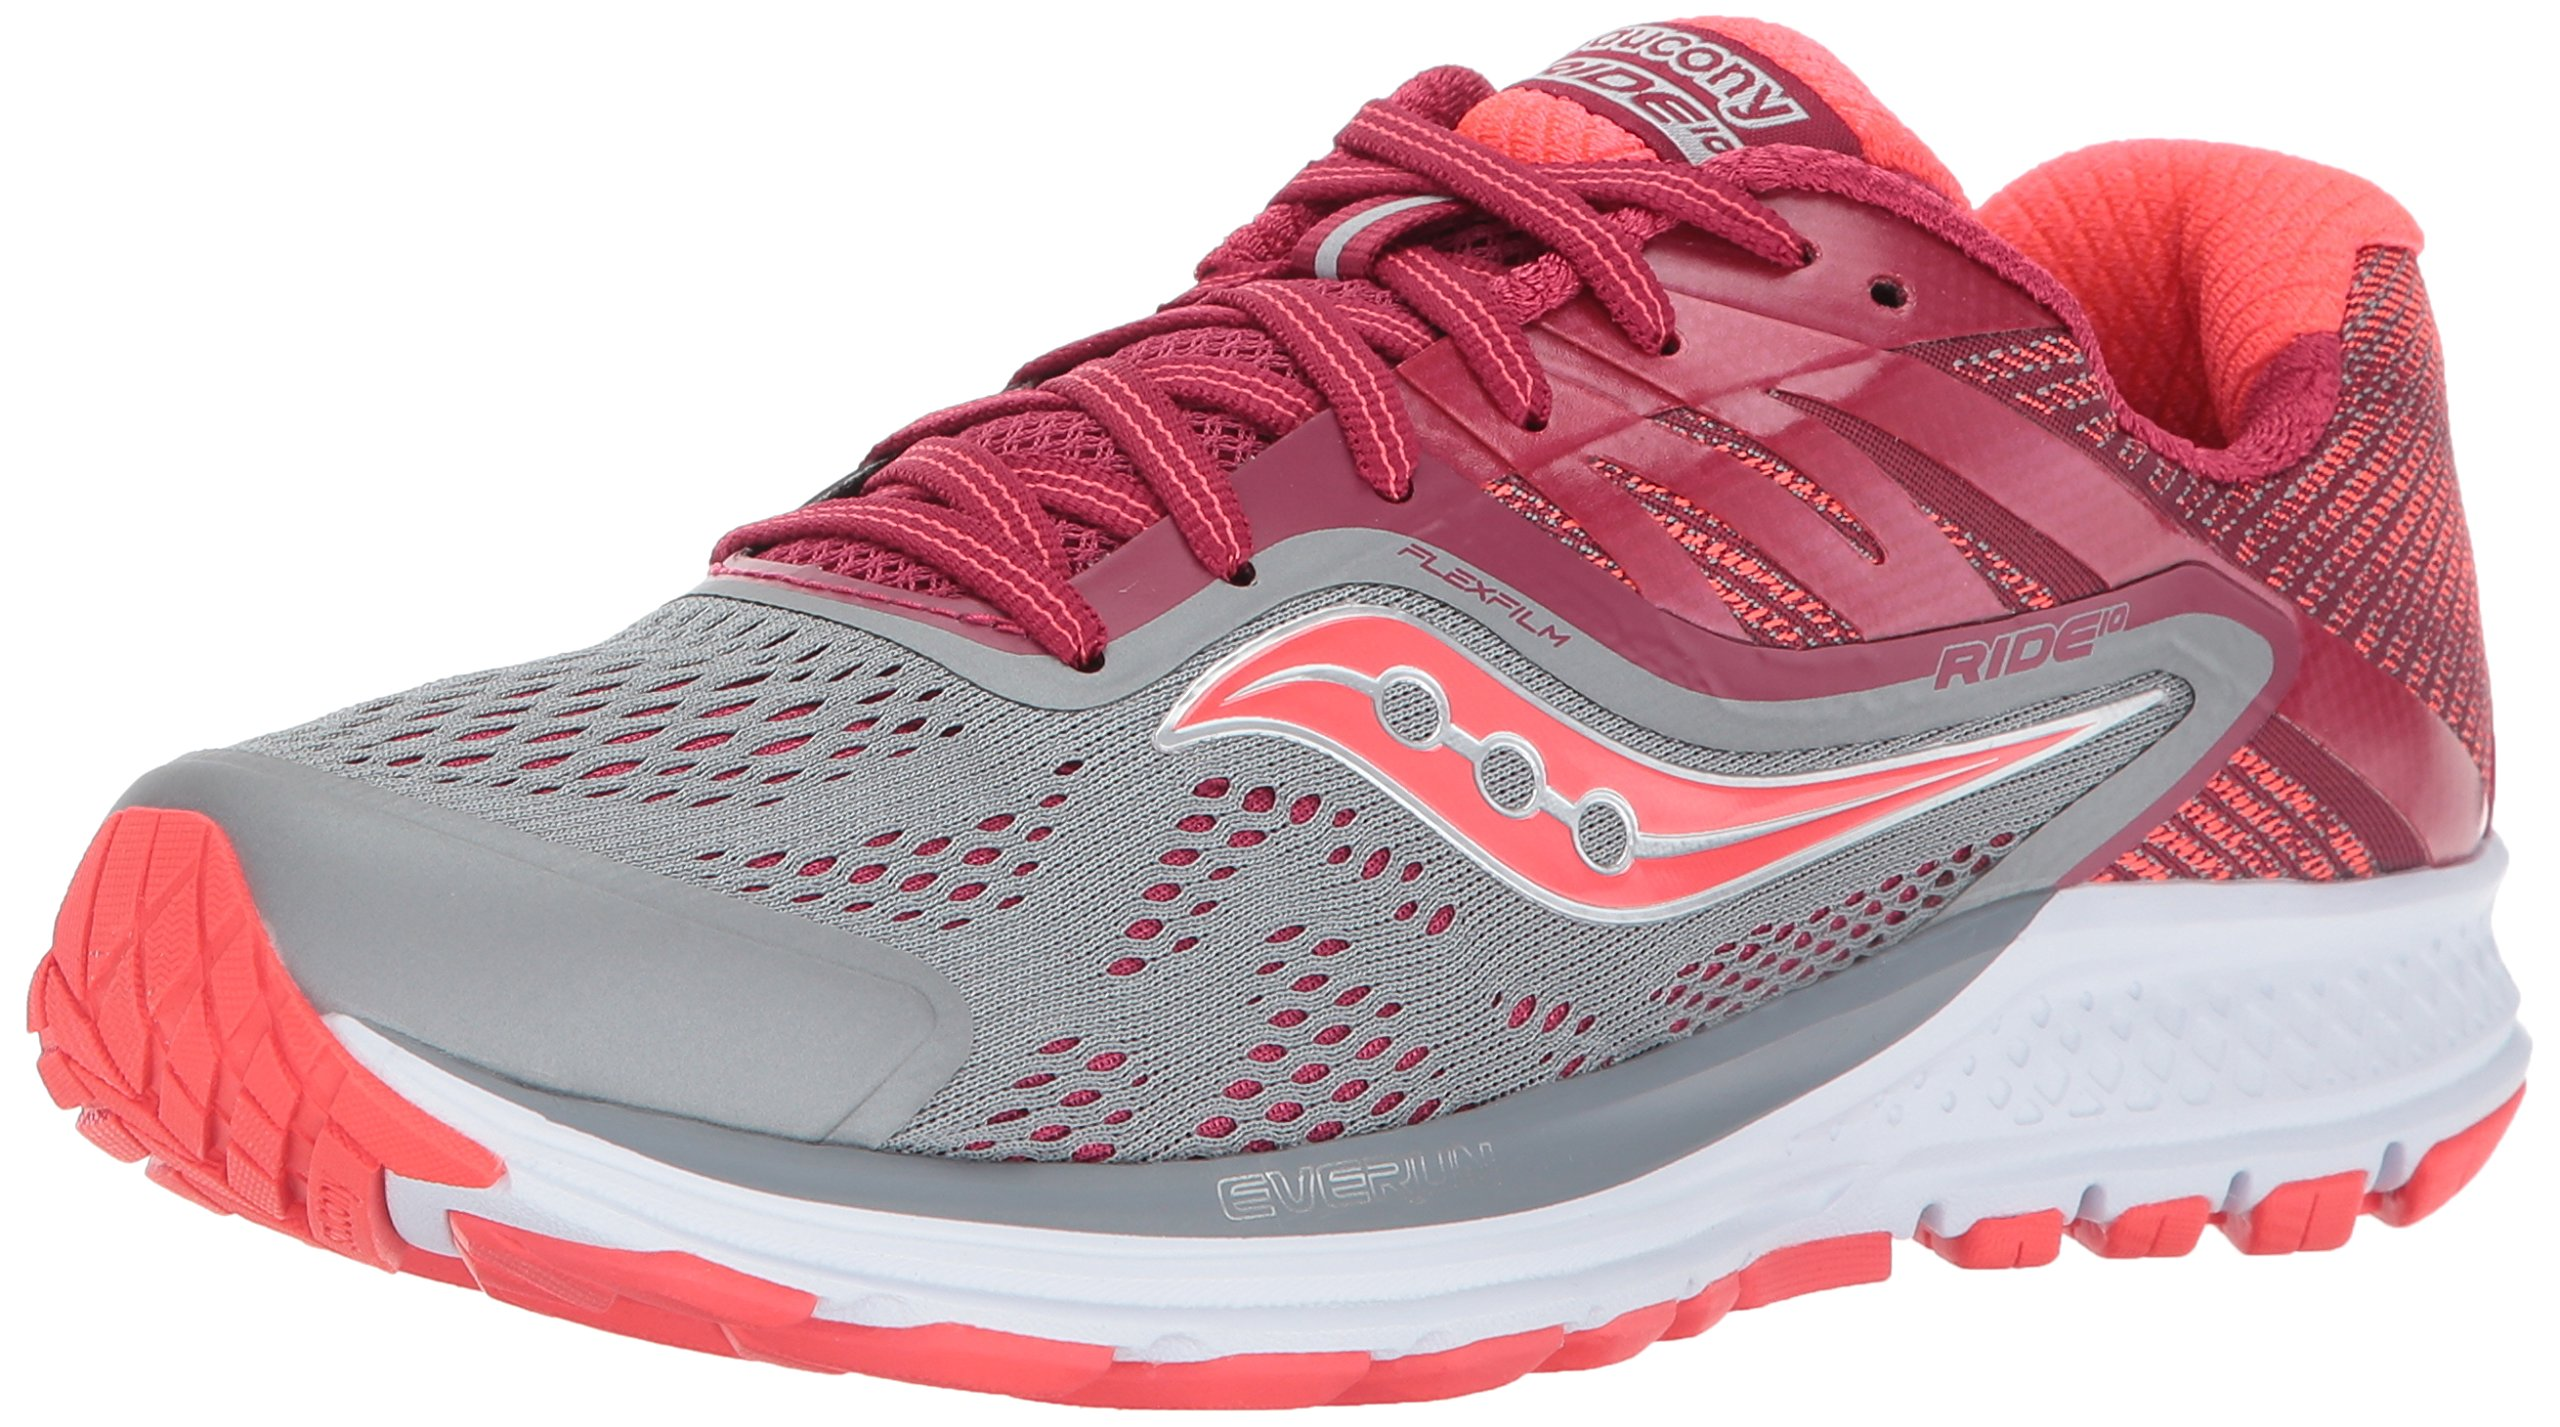 Saucony Women's Ride 10 Running Shoe, Grey Berry, 8.5 Medium US